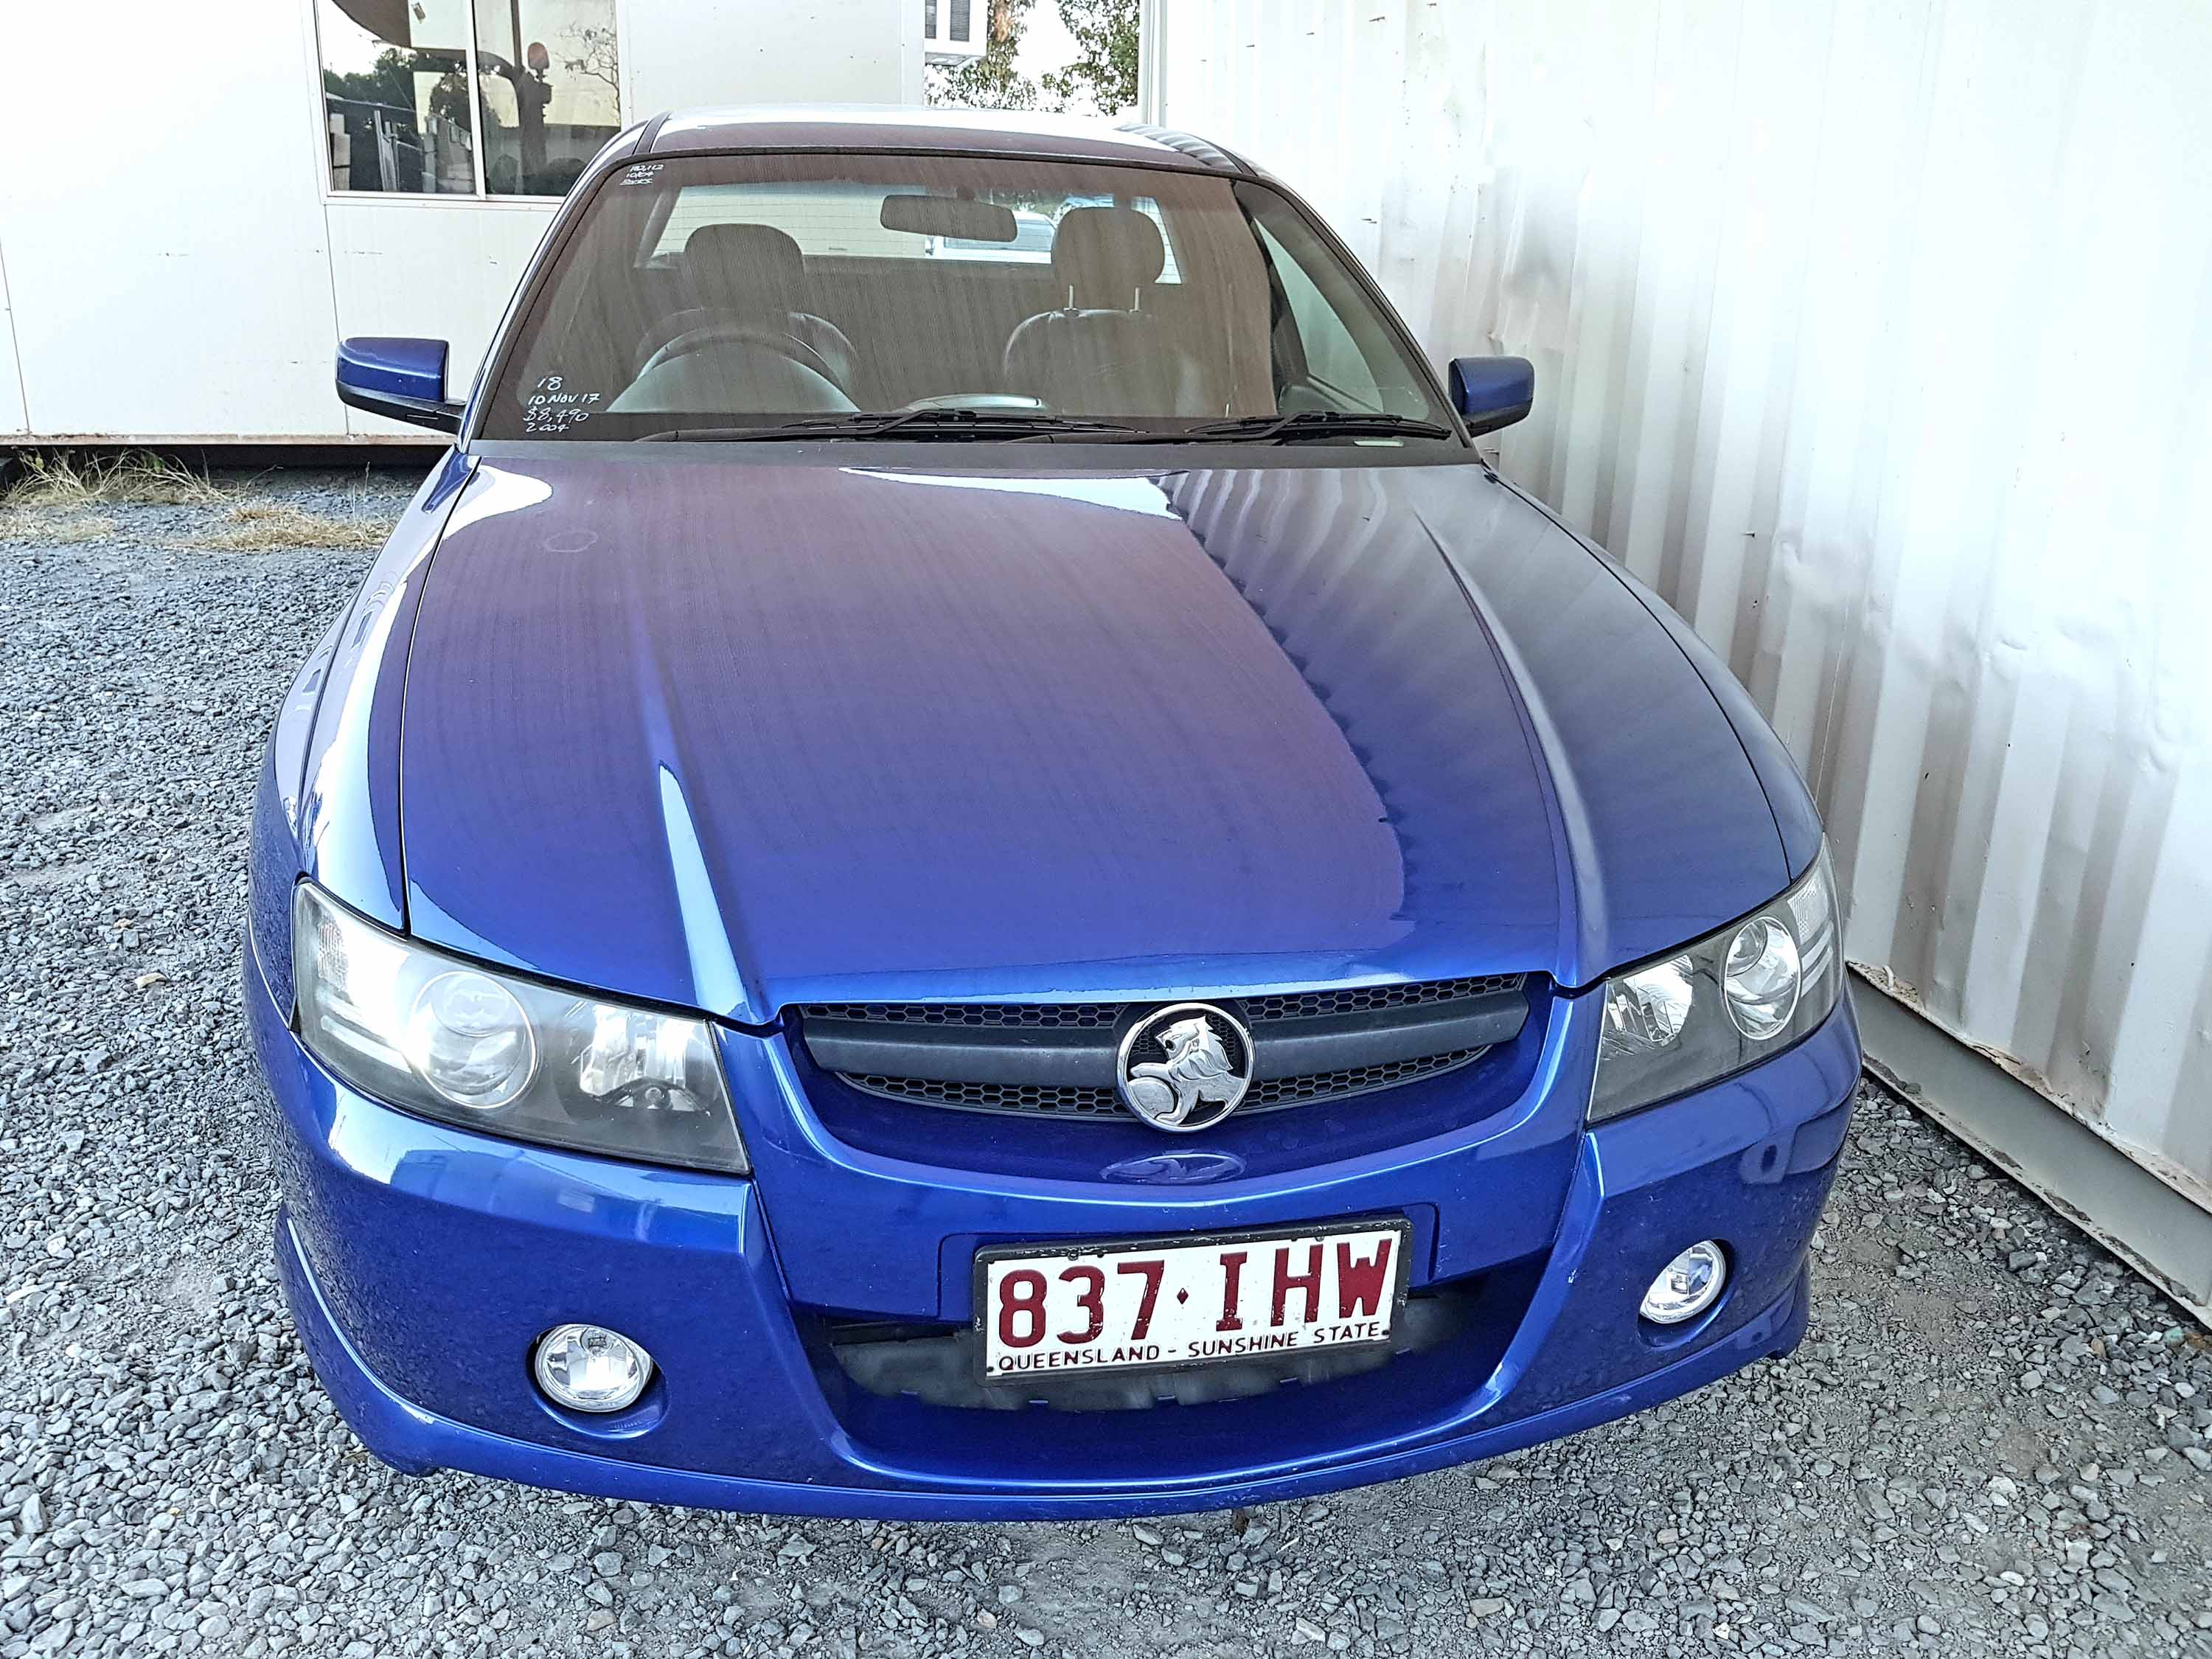 V8 SS Commodore Ute Automatic 2004 Blue - Used Vehicle Sales